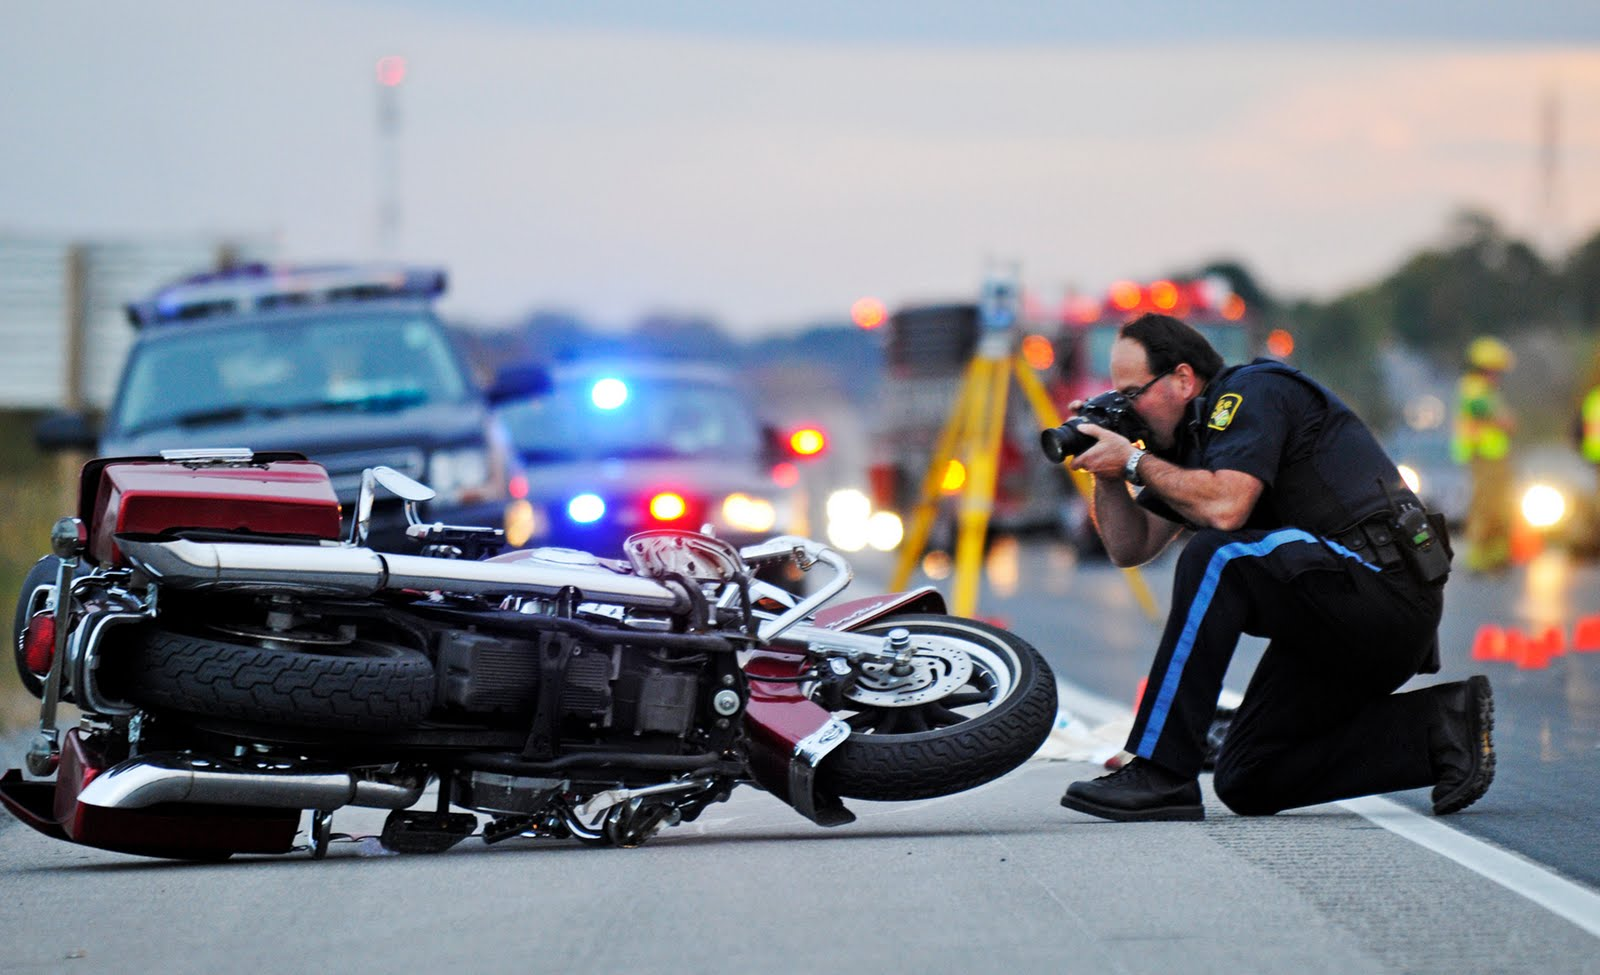 New York Motorcycle Accident Lawyers Discuss Current Statistics And Ways To Decrease Accidents Frekhtman Ociates